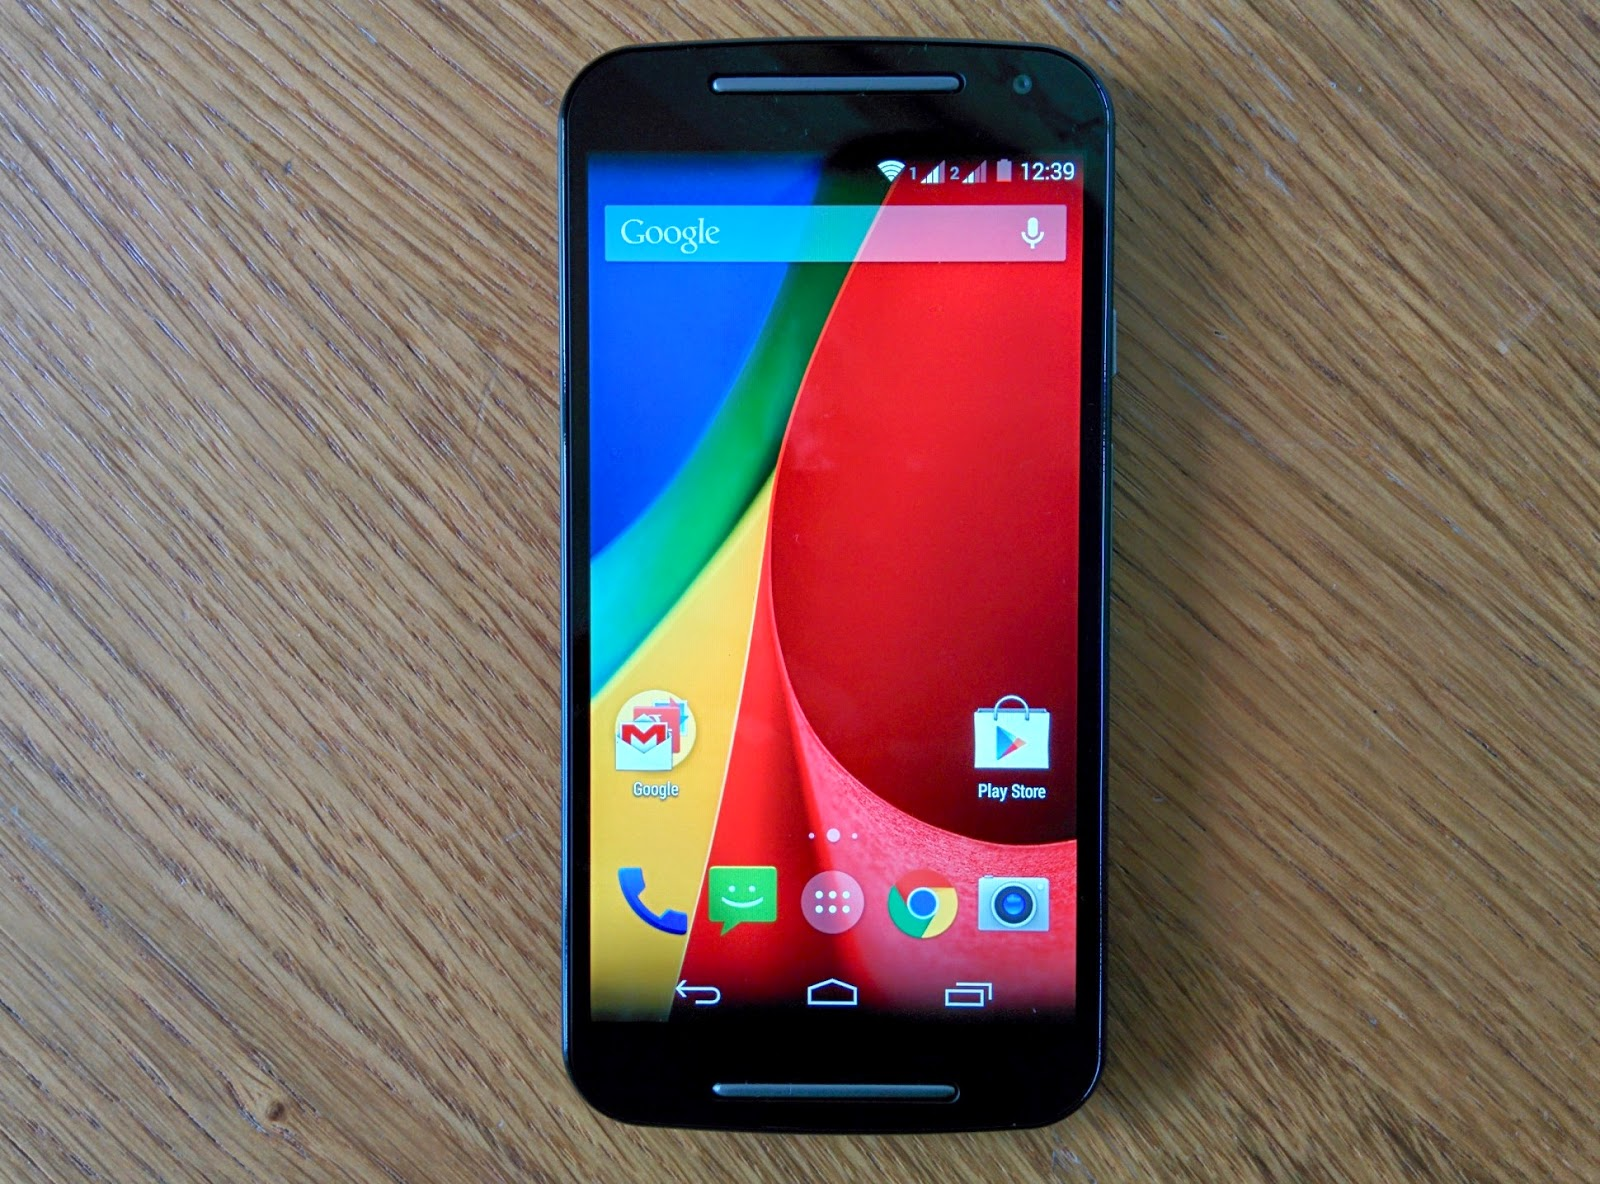 Motorola Moto G (2014) Specifications and Review